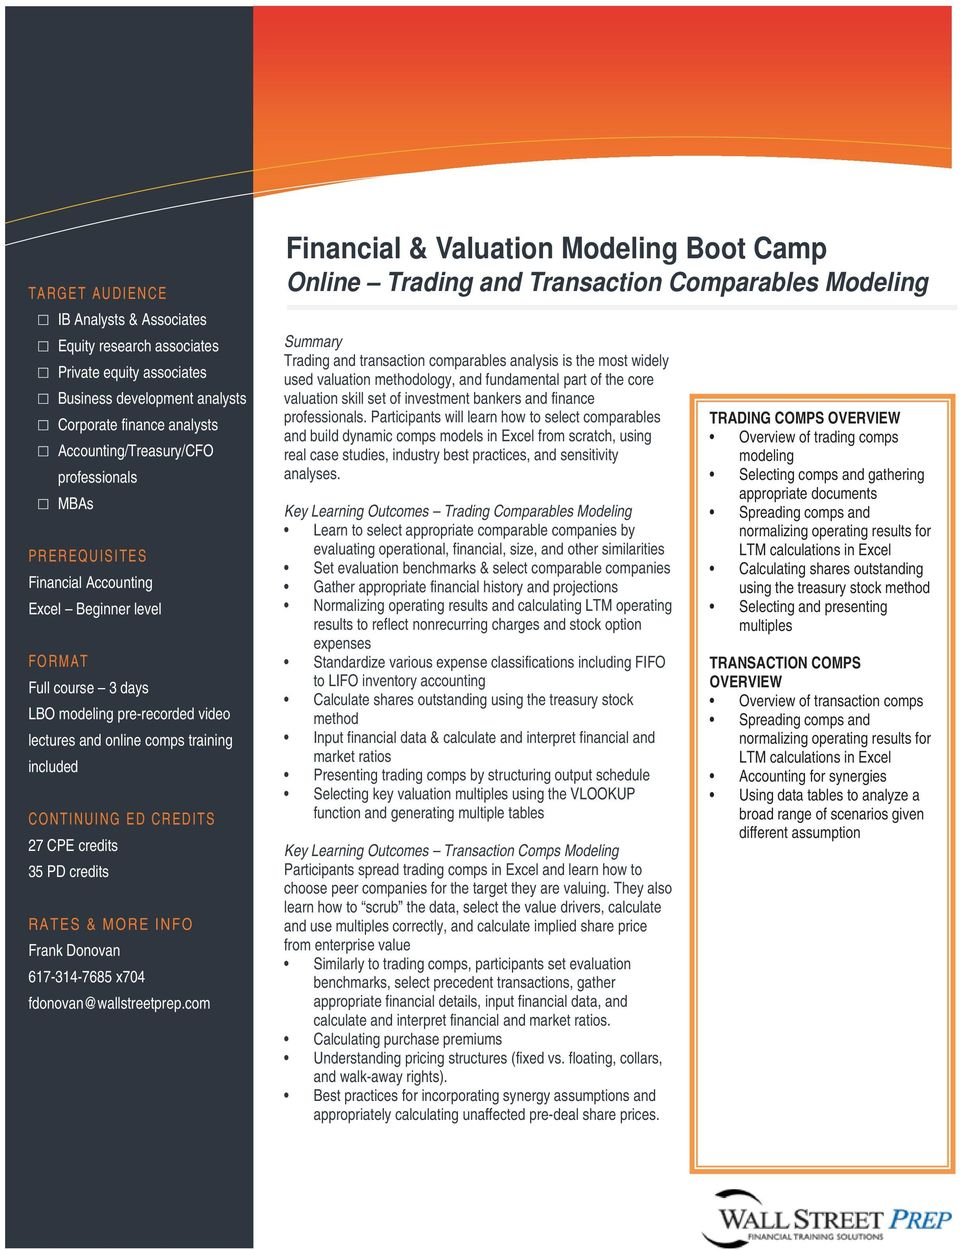 Financial & Valuation Modeling Boot Camp - PDF